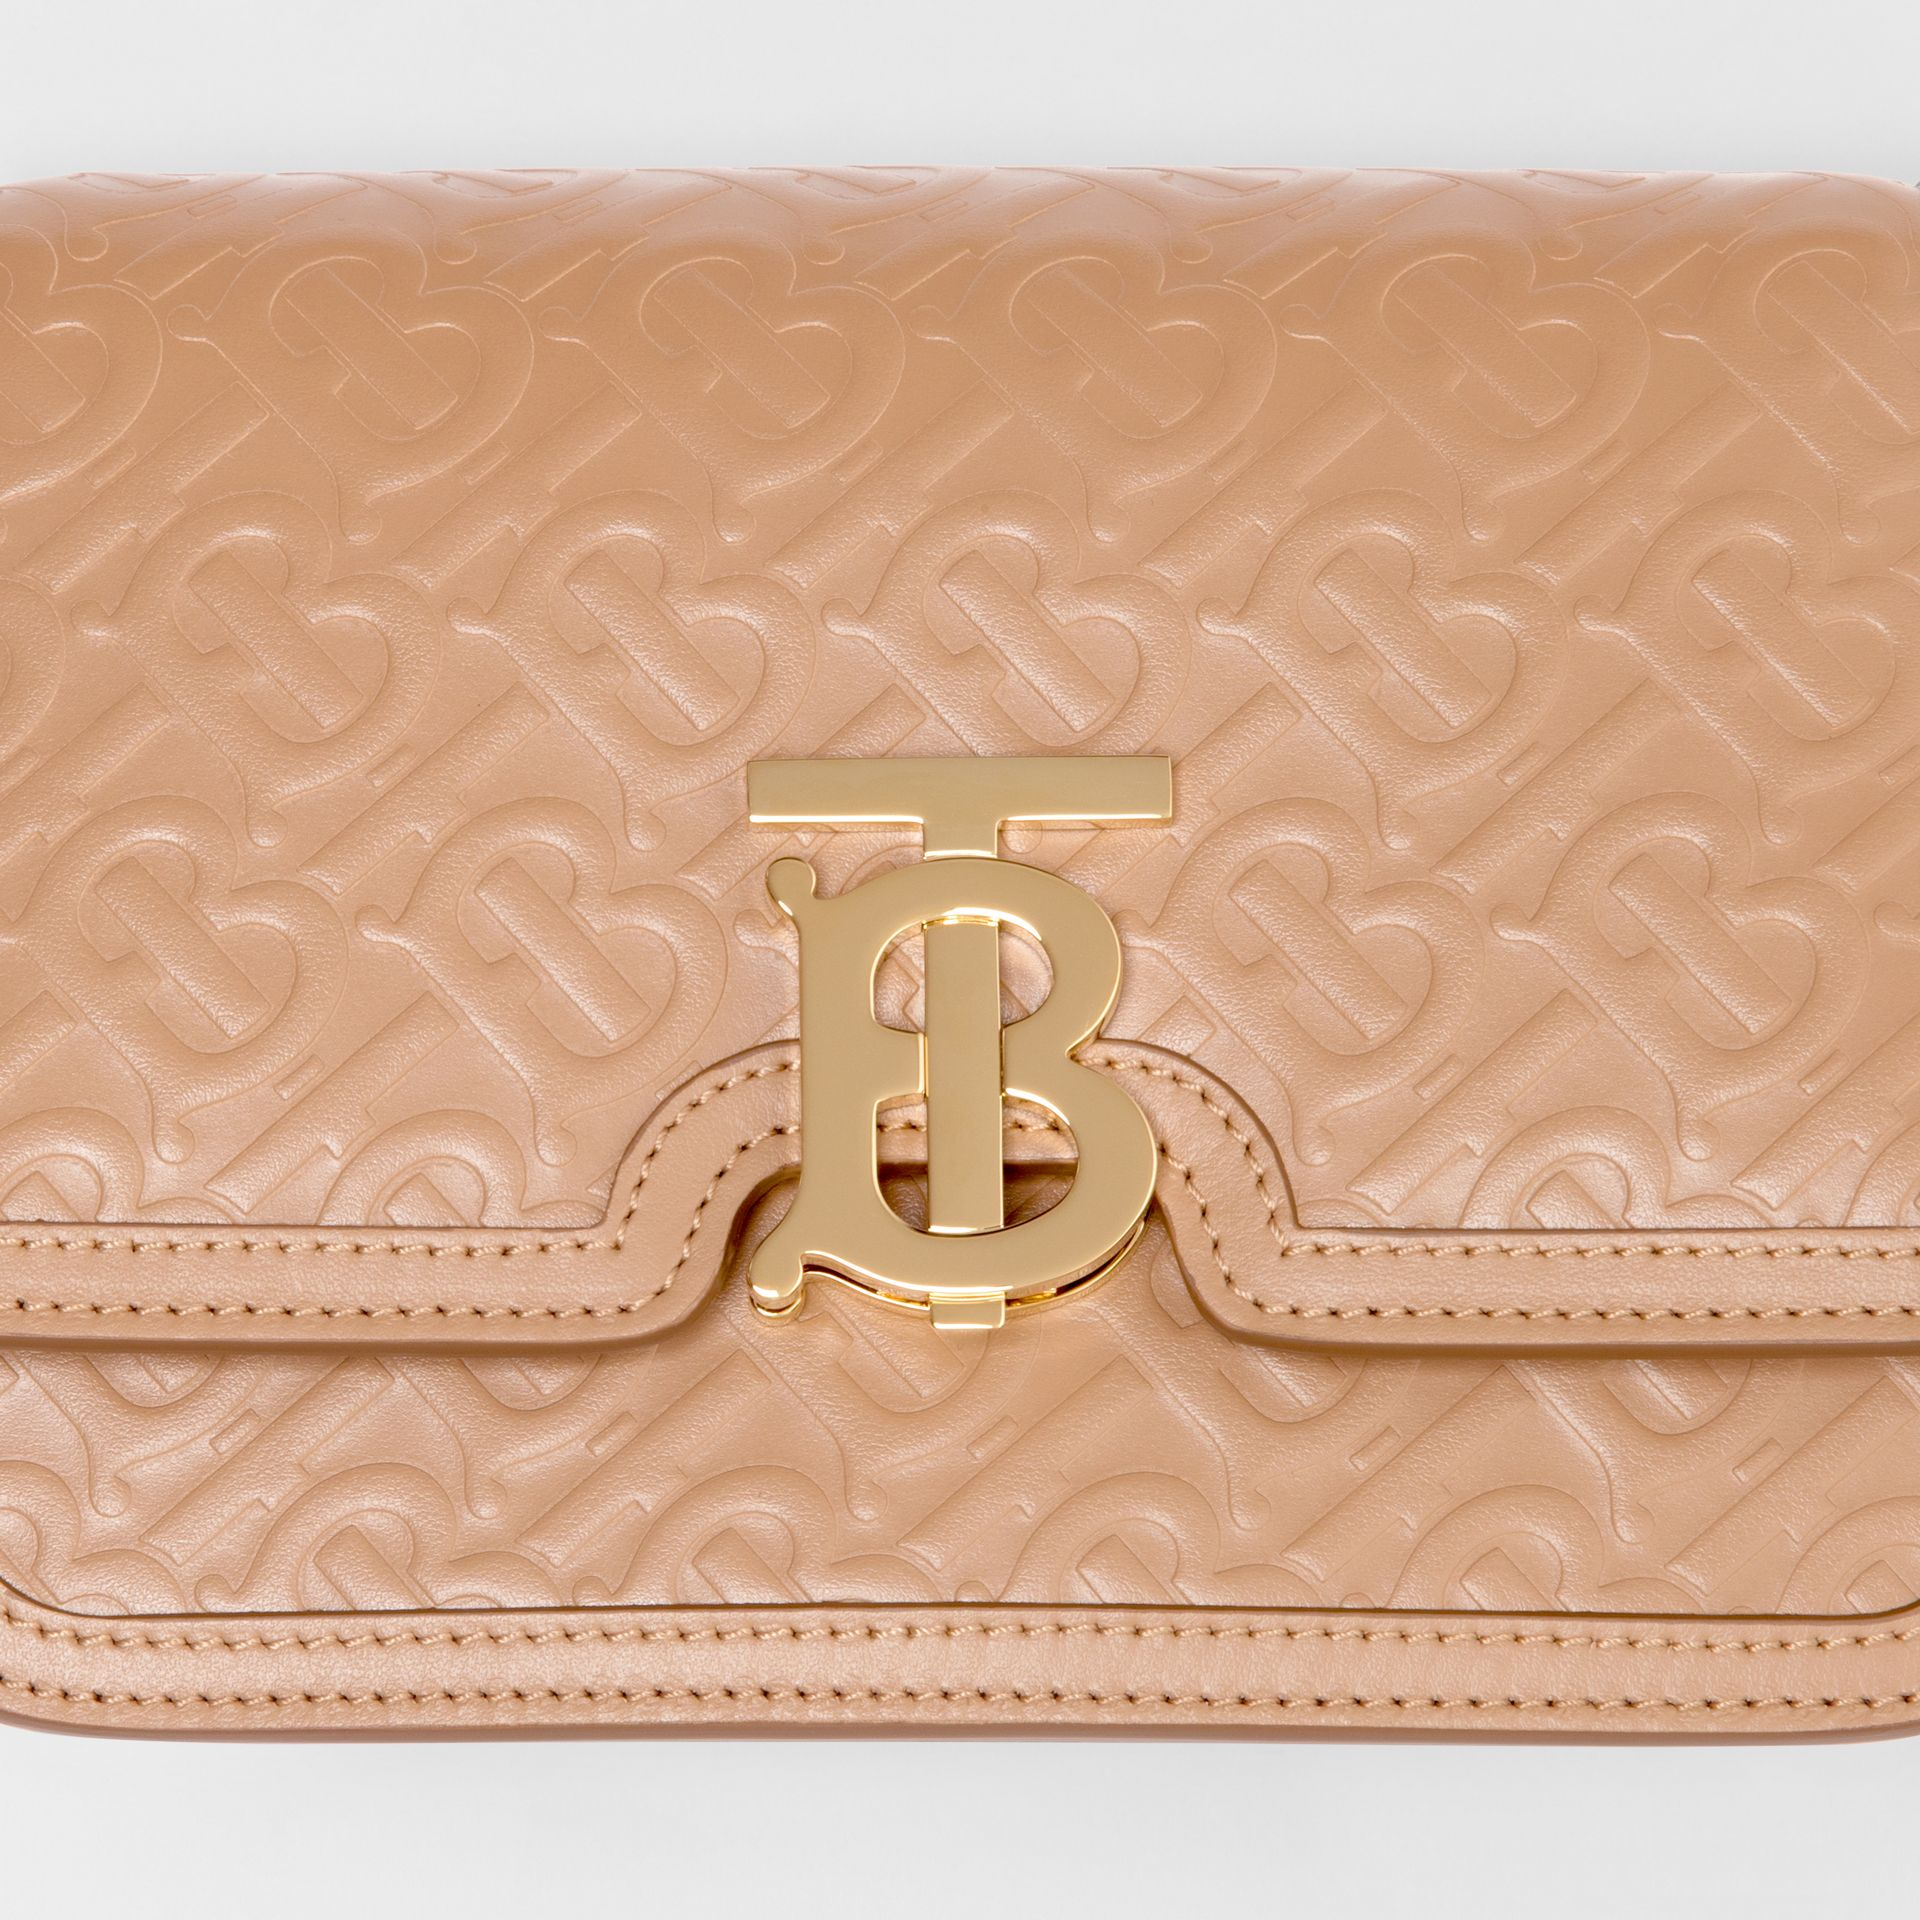 Small Monogram Leather TB Bag in Light Camel - Women | Burberry - gallery image 1